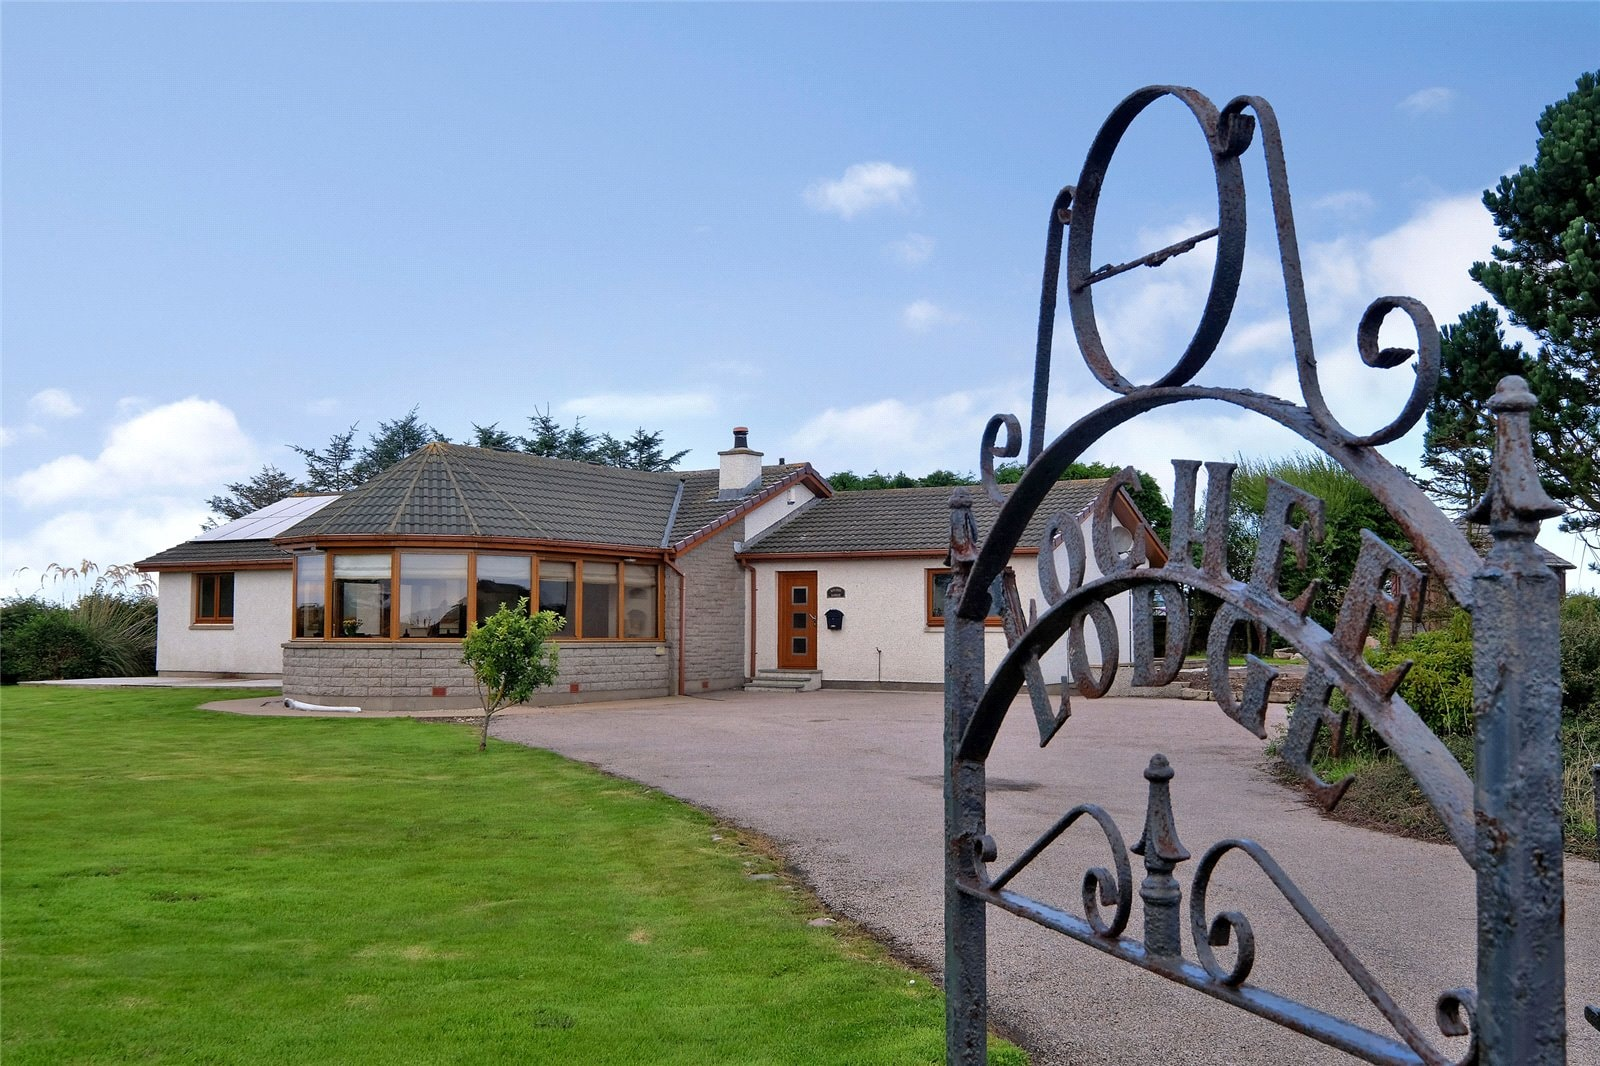 Here's what £300,000 gets you in Scotland's property market...